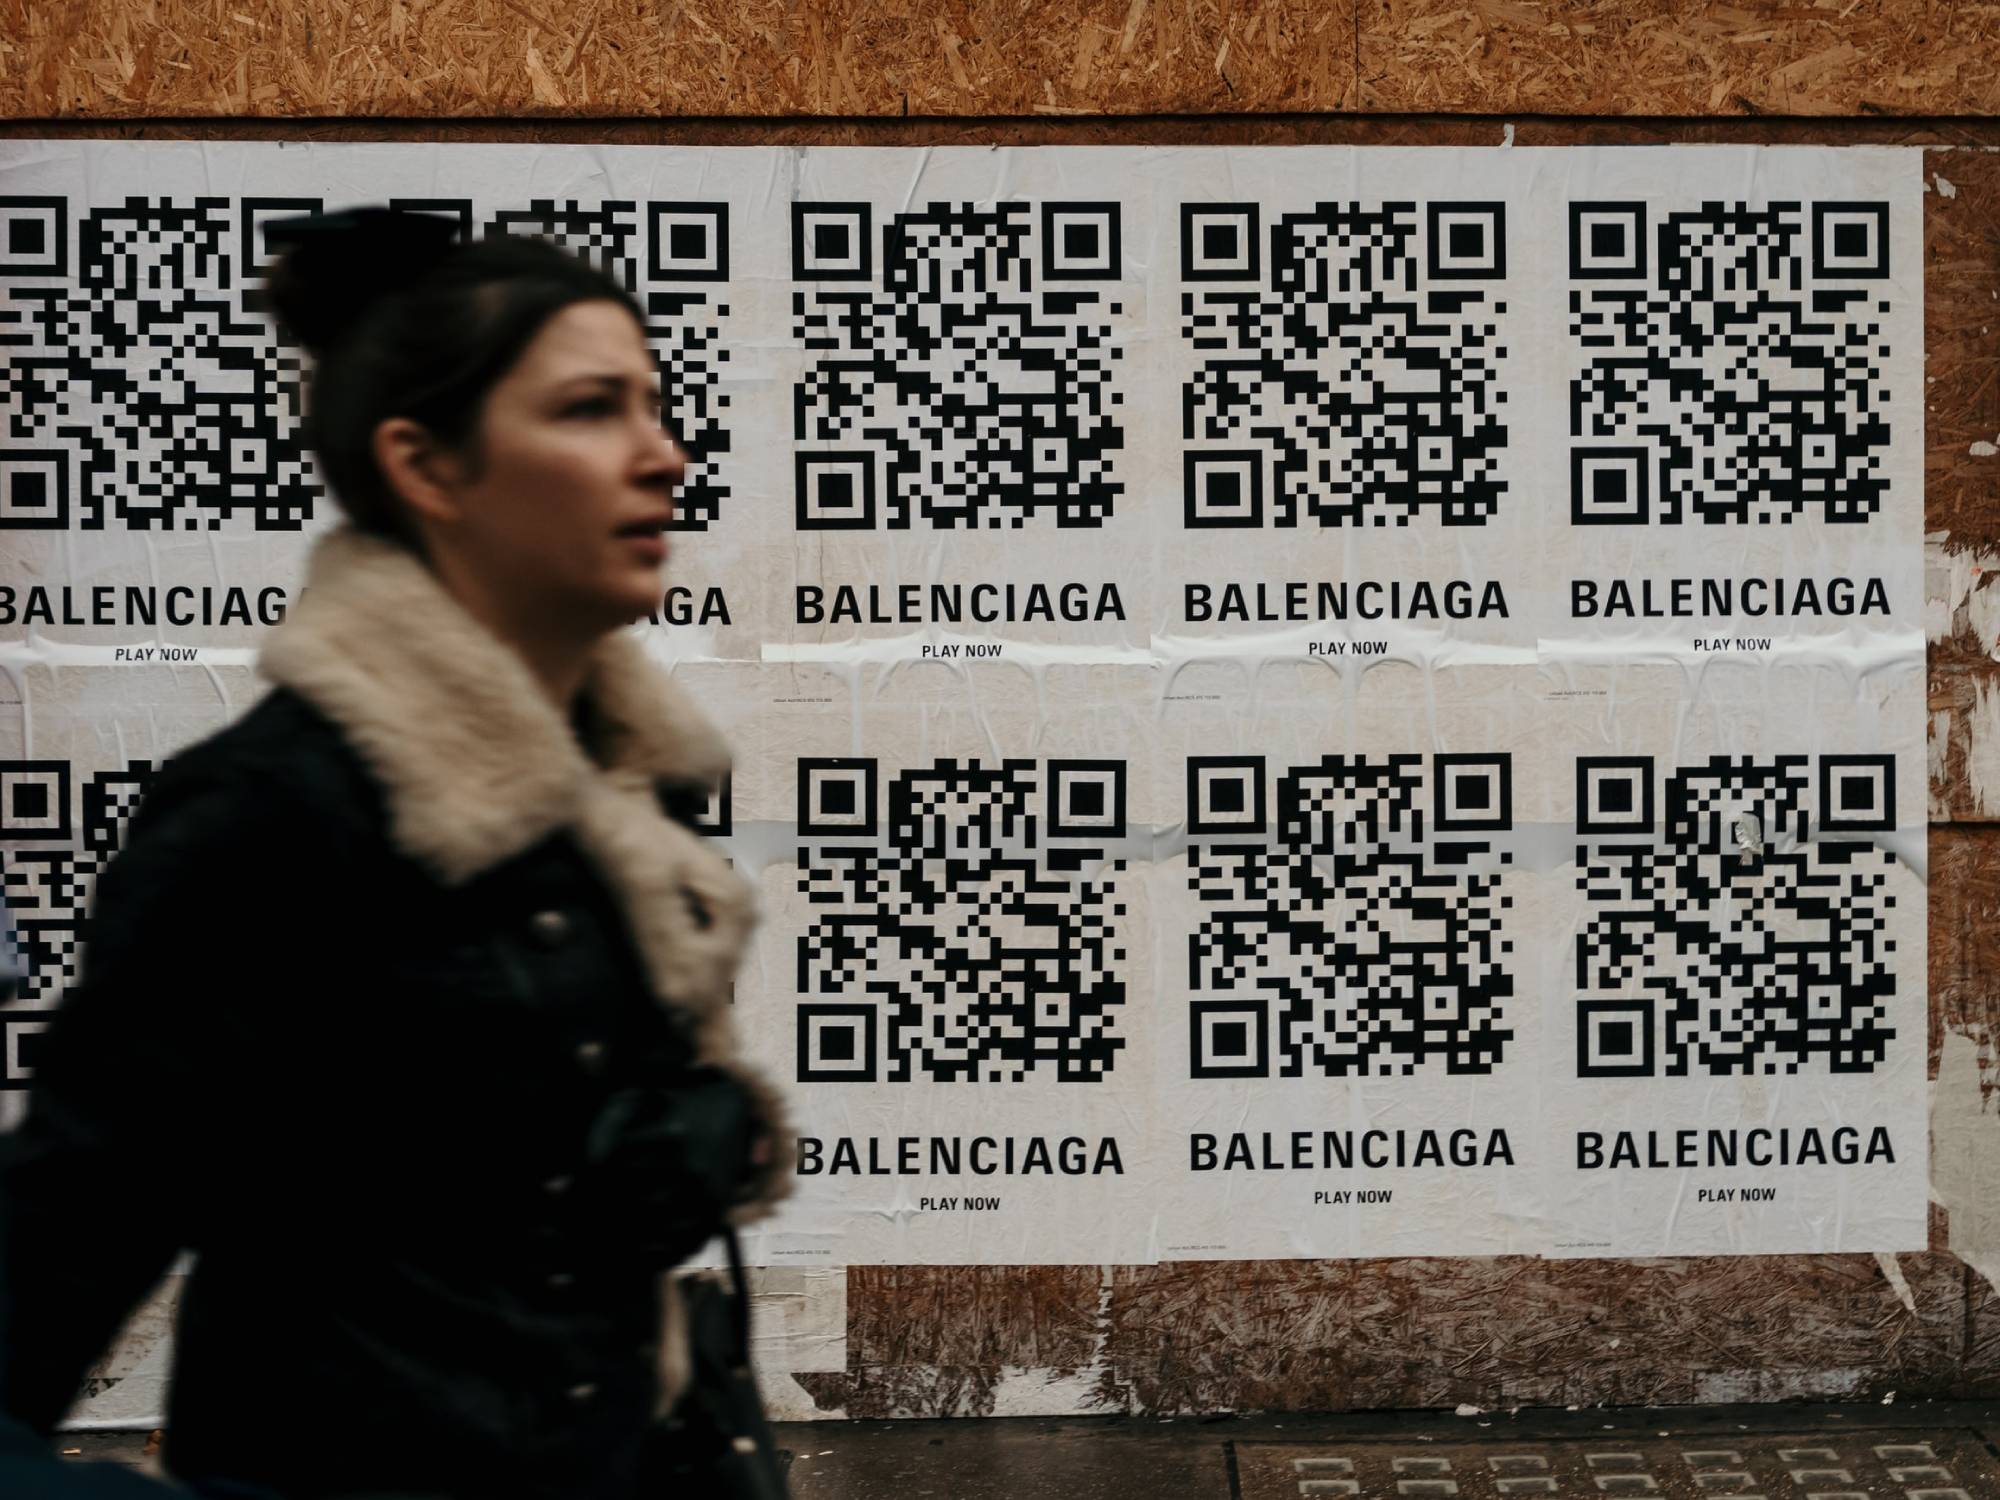 Person walking in front of posters with big QR codes